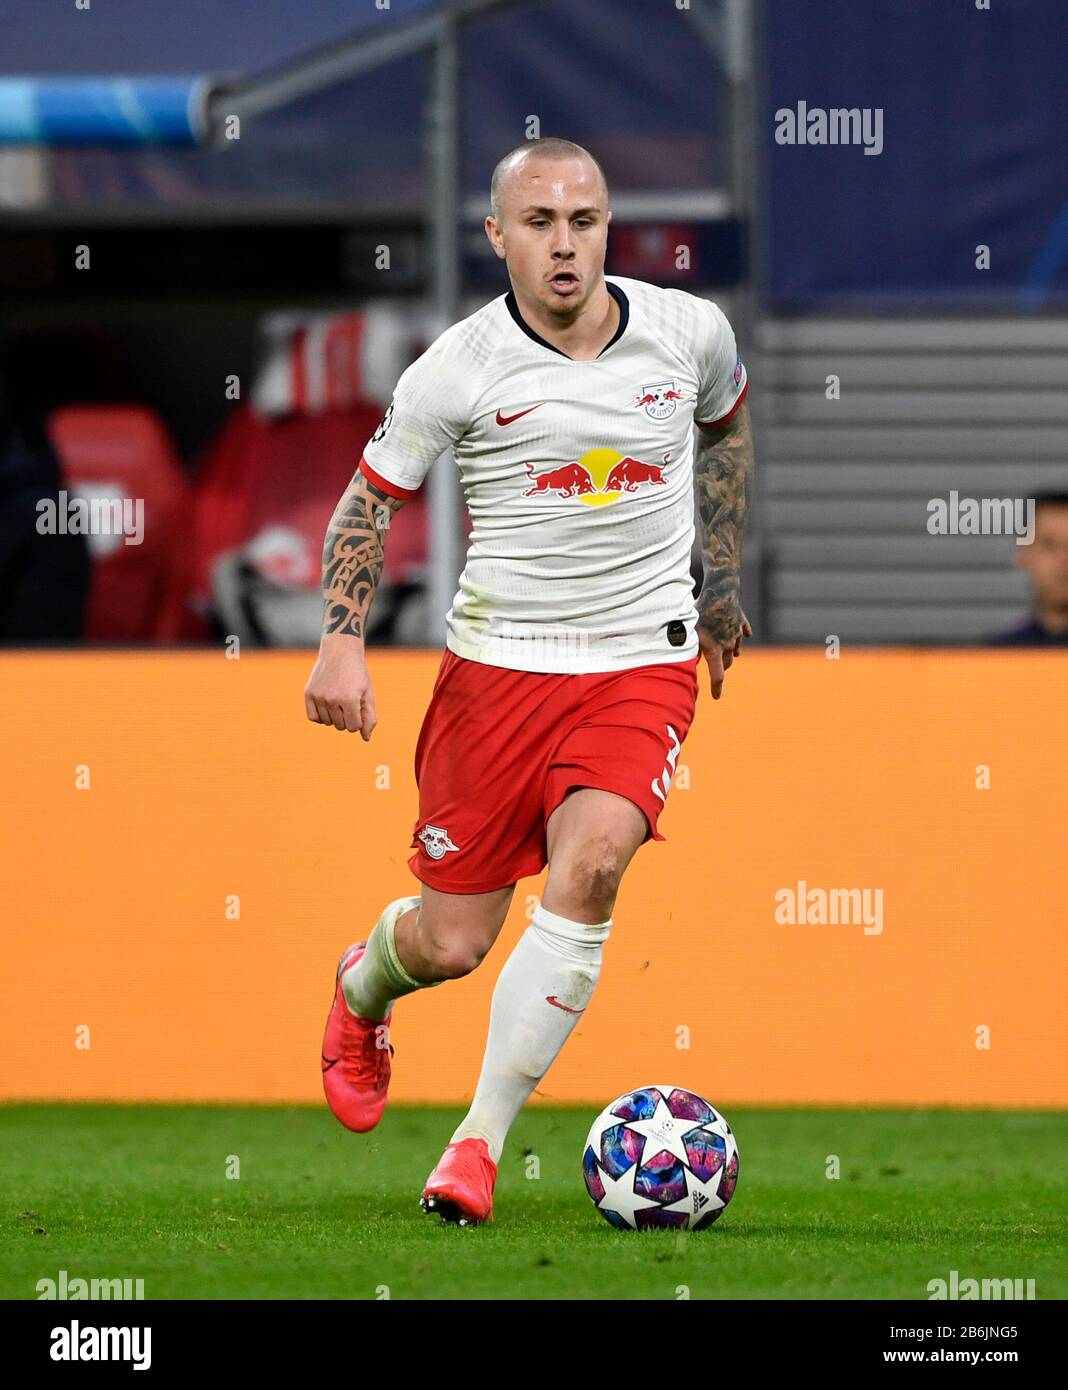 Angelino L Football Champions League Round Of 16 Reverse Rb Leipzig L Tottenham Hotspur Tth 3 0 On March 10th 2020 In Leipzig Germany A Usage Worldwide Stock Photo Alamy